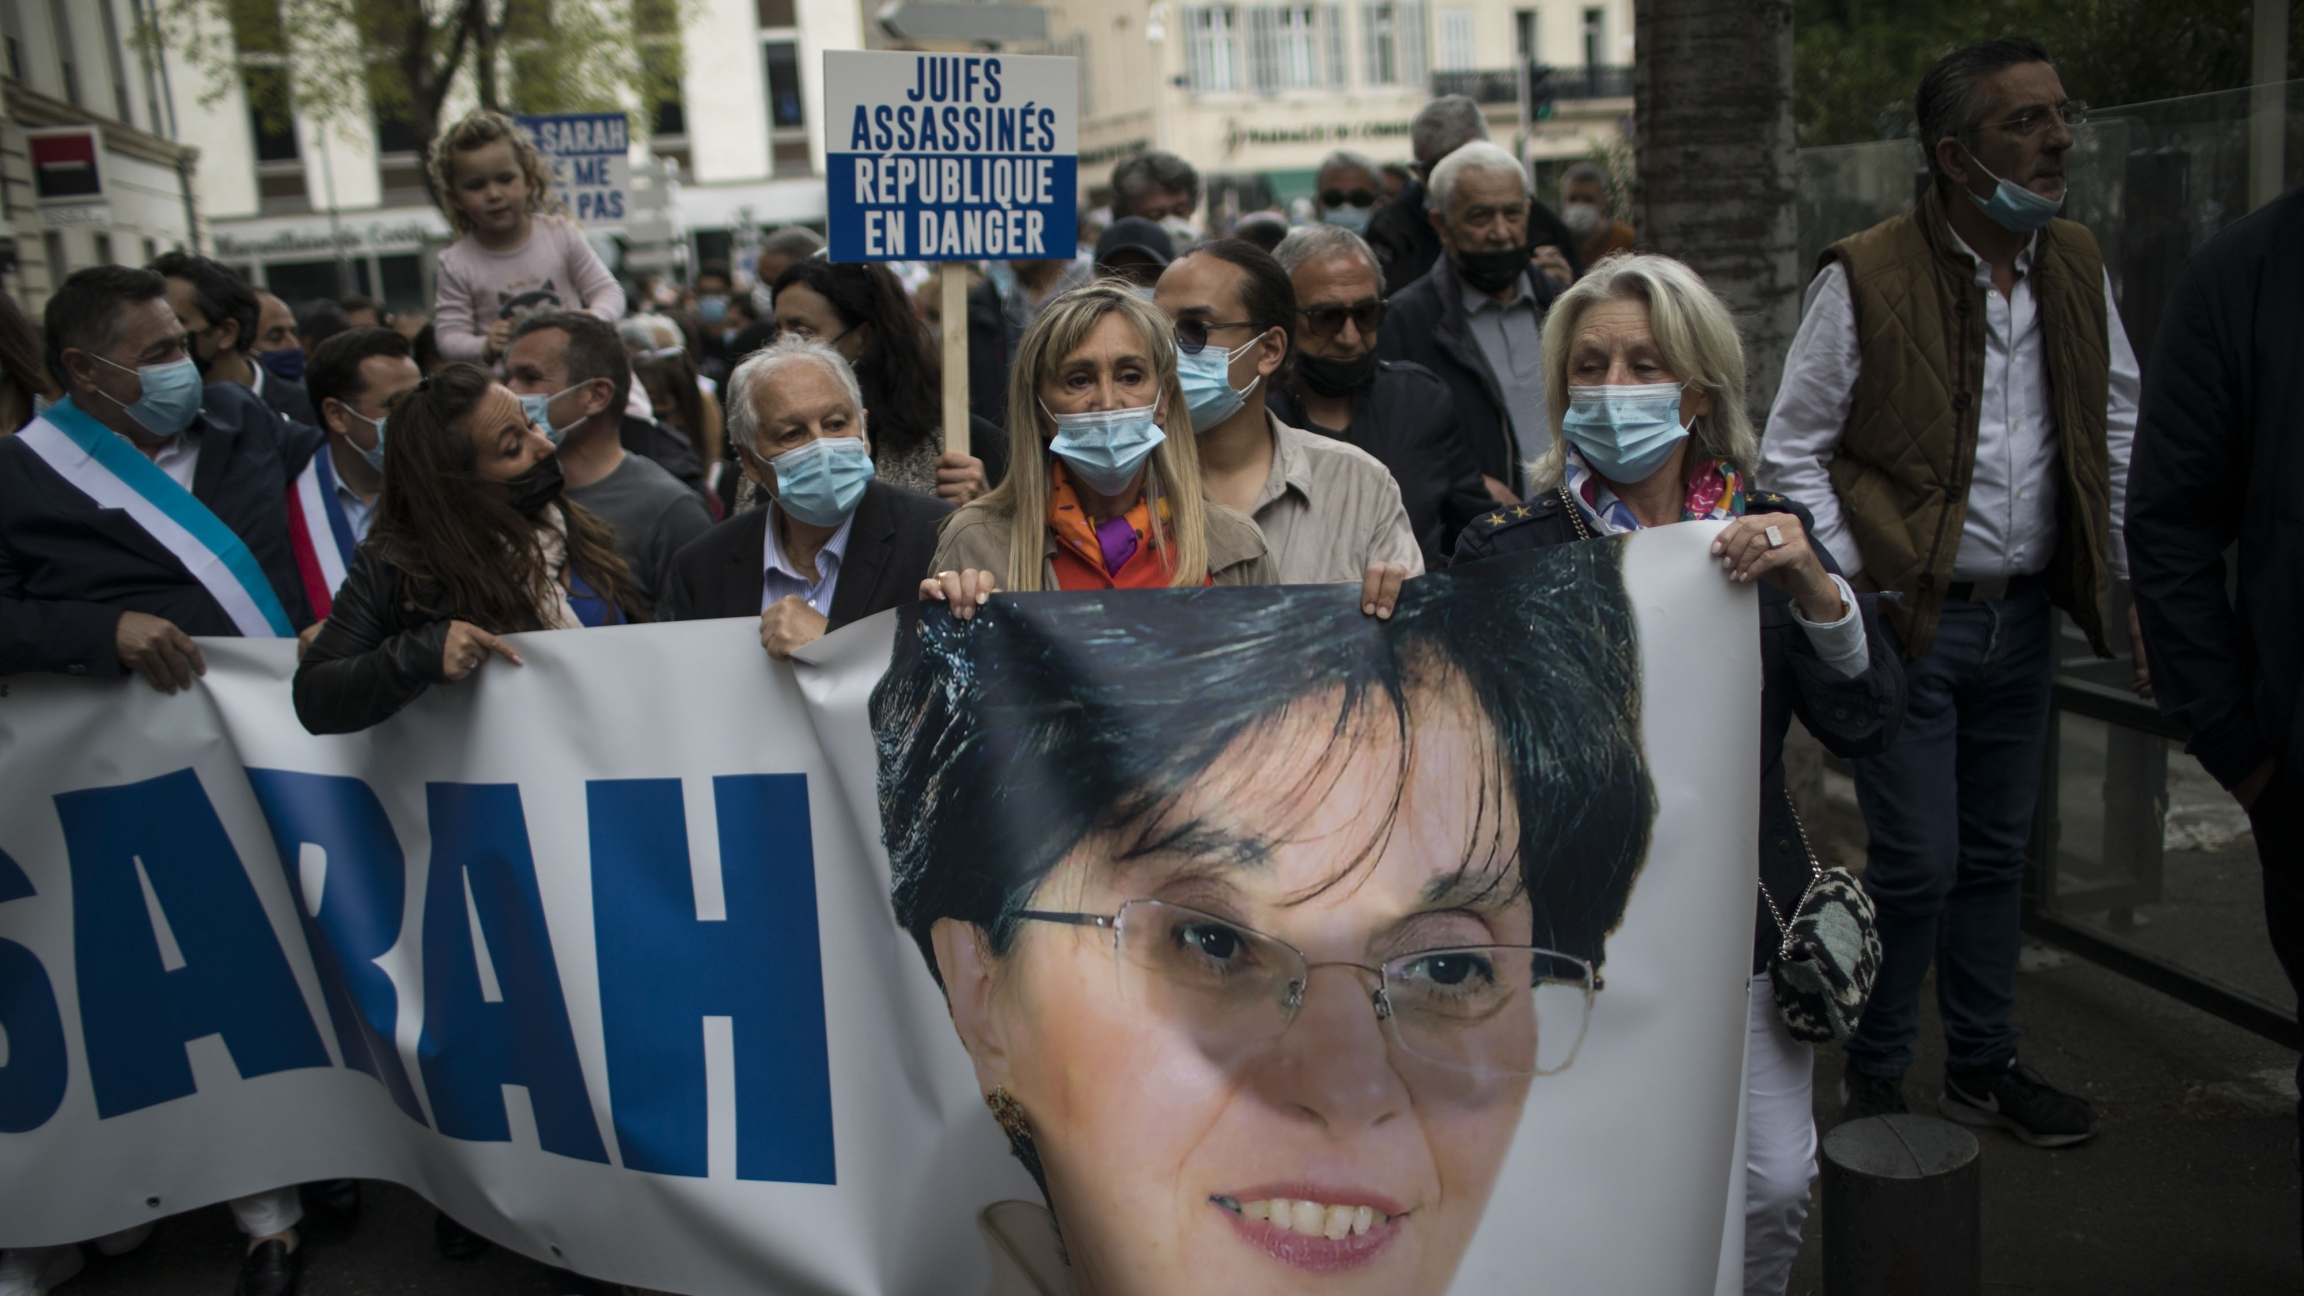 Protesters carry a banner with Sarah Halimi's face and name printed on it in a protest over a court's decision not to try her killer.